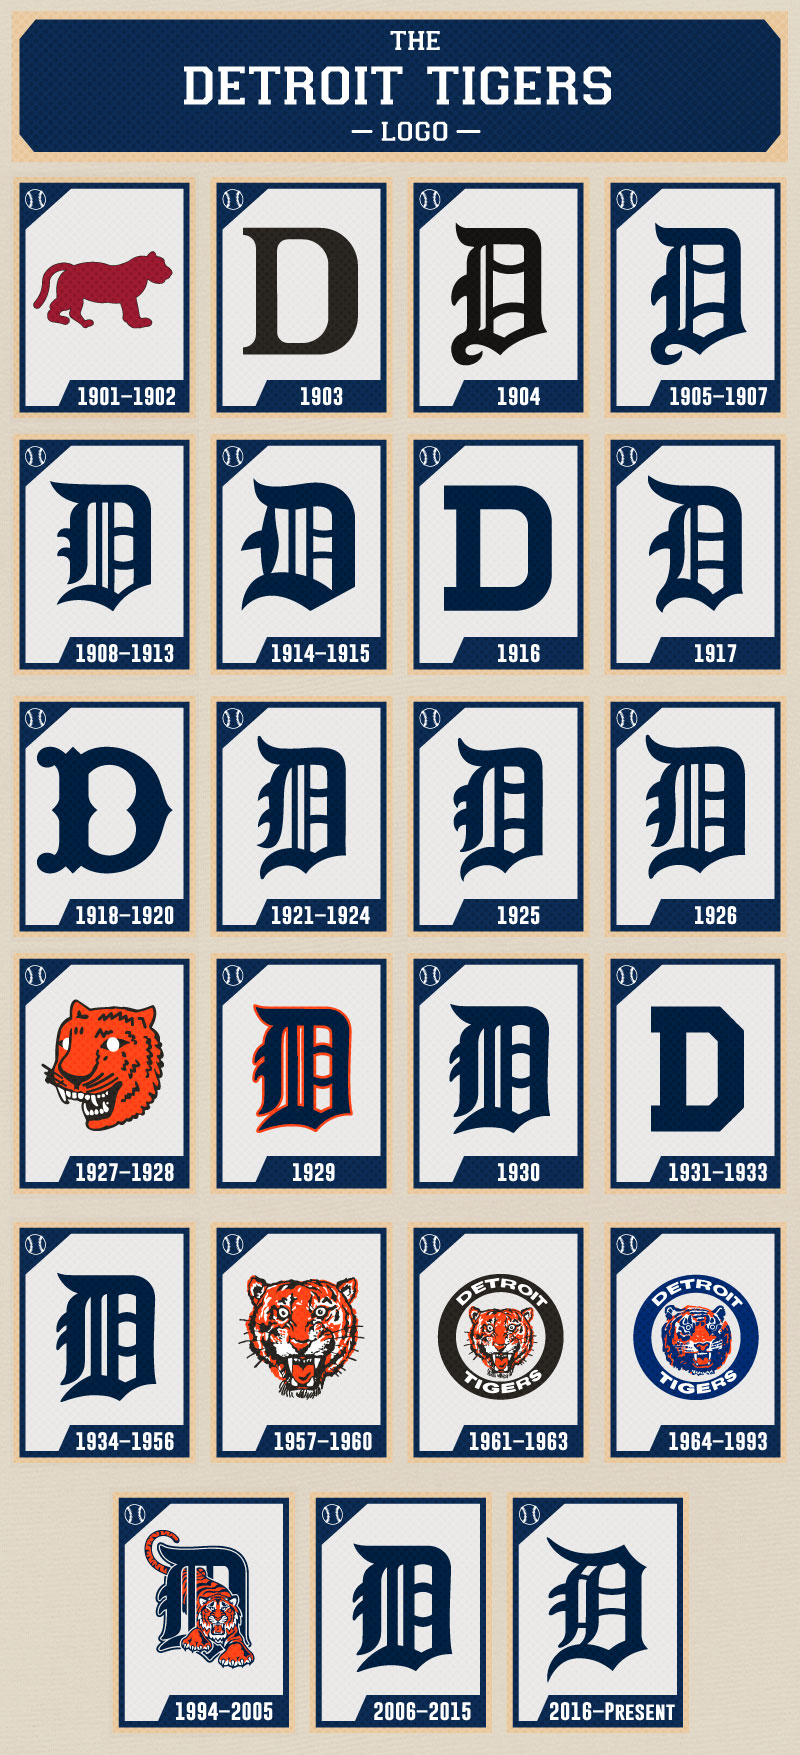 Detroit Tigers Logo - The Evolution of the Detroit Tigers Logo